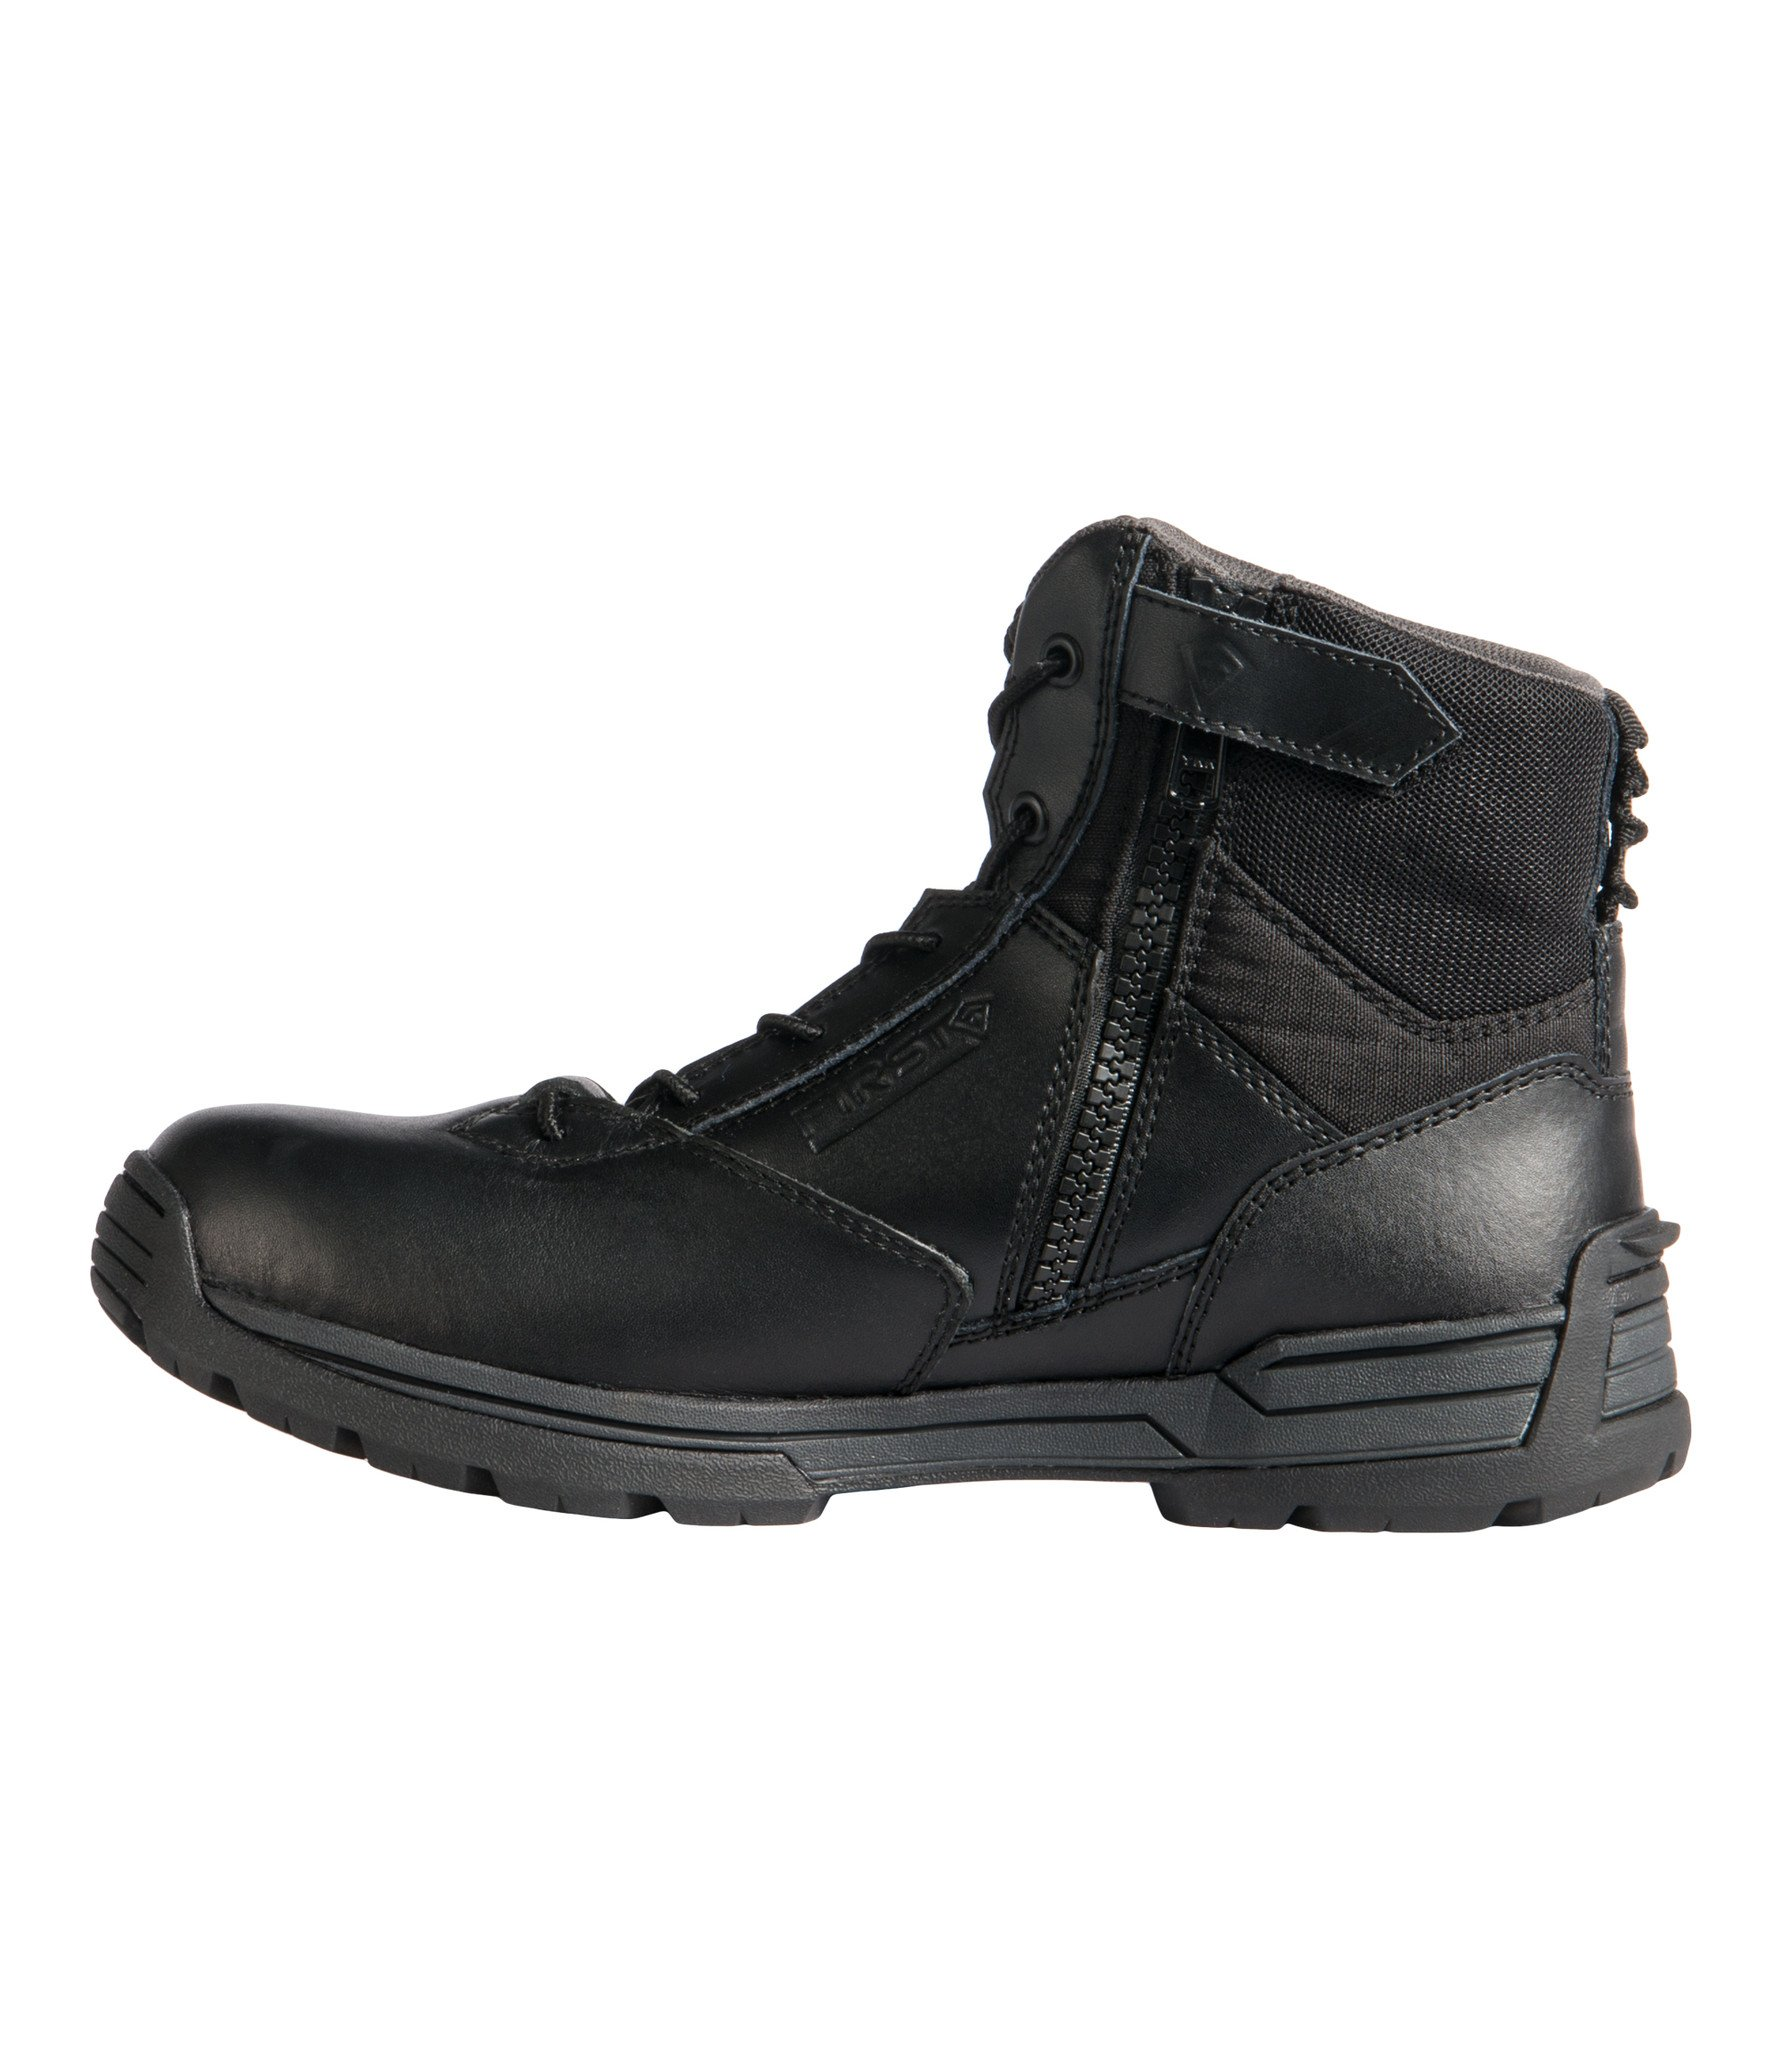 "Men's 6"" Side Zip Duty Boot (Black)"